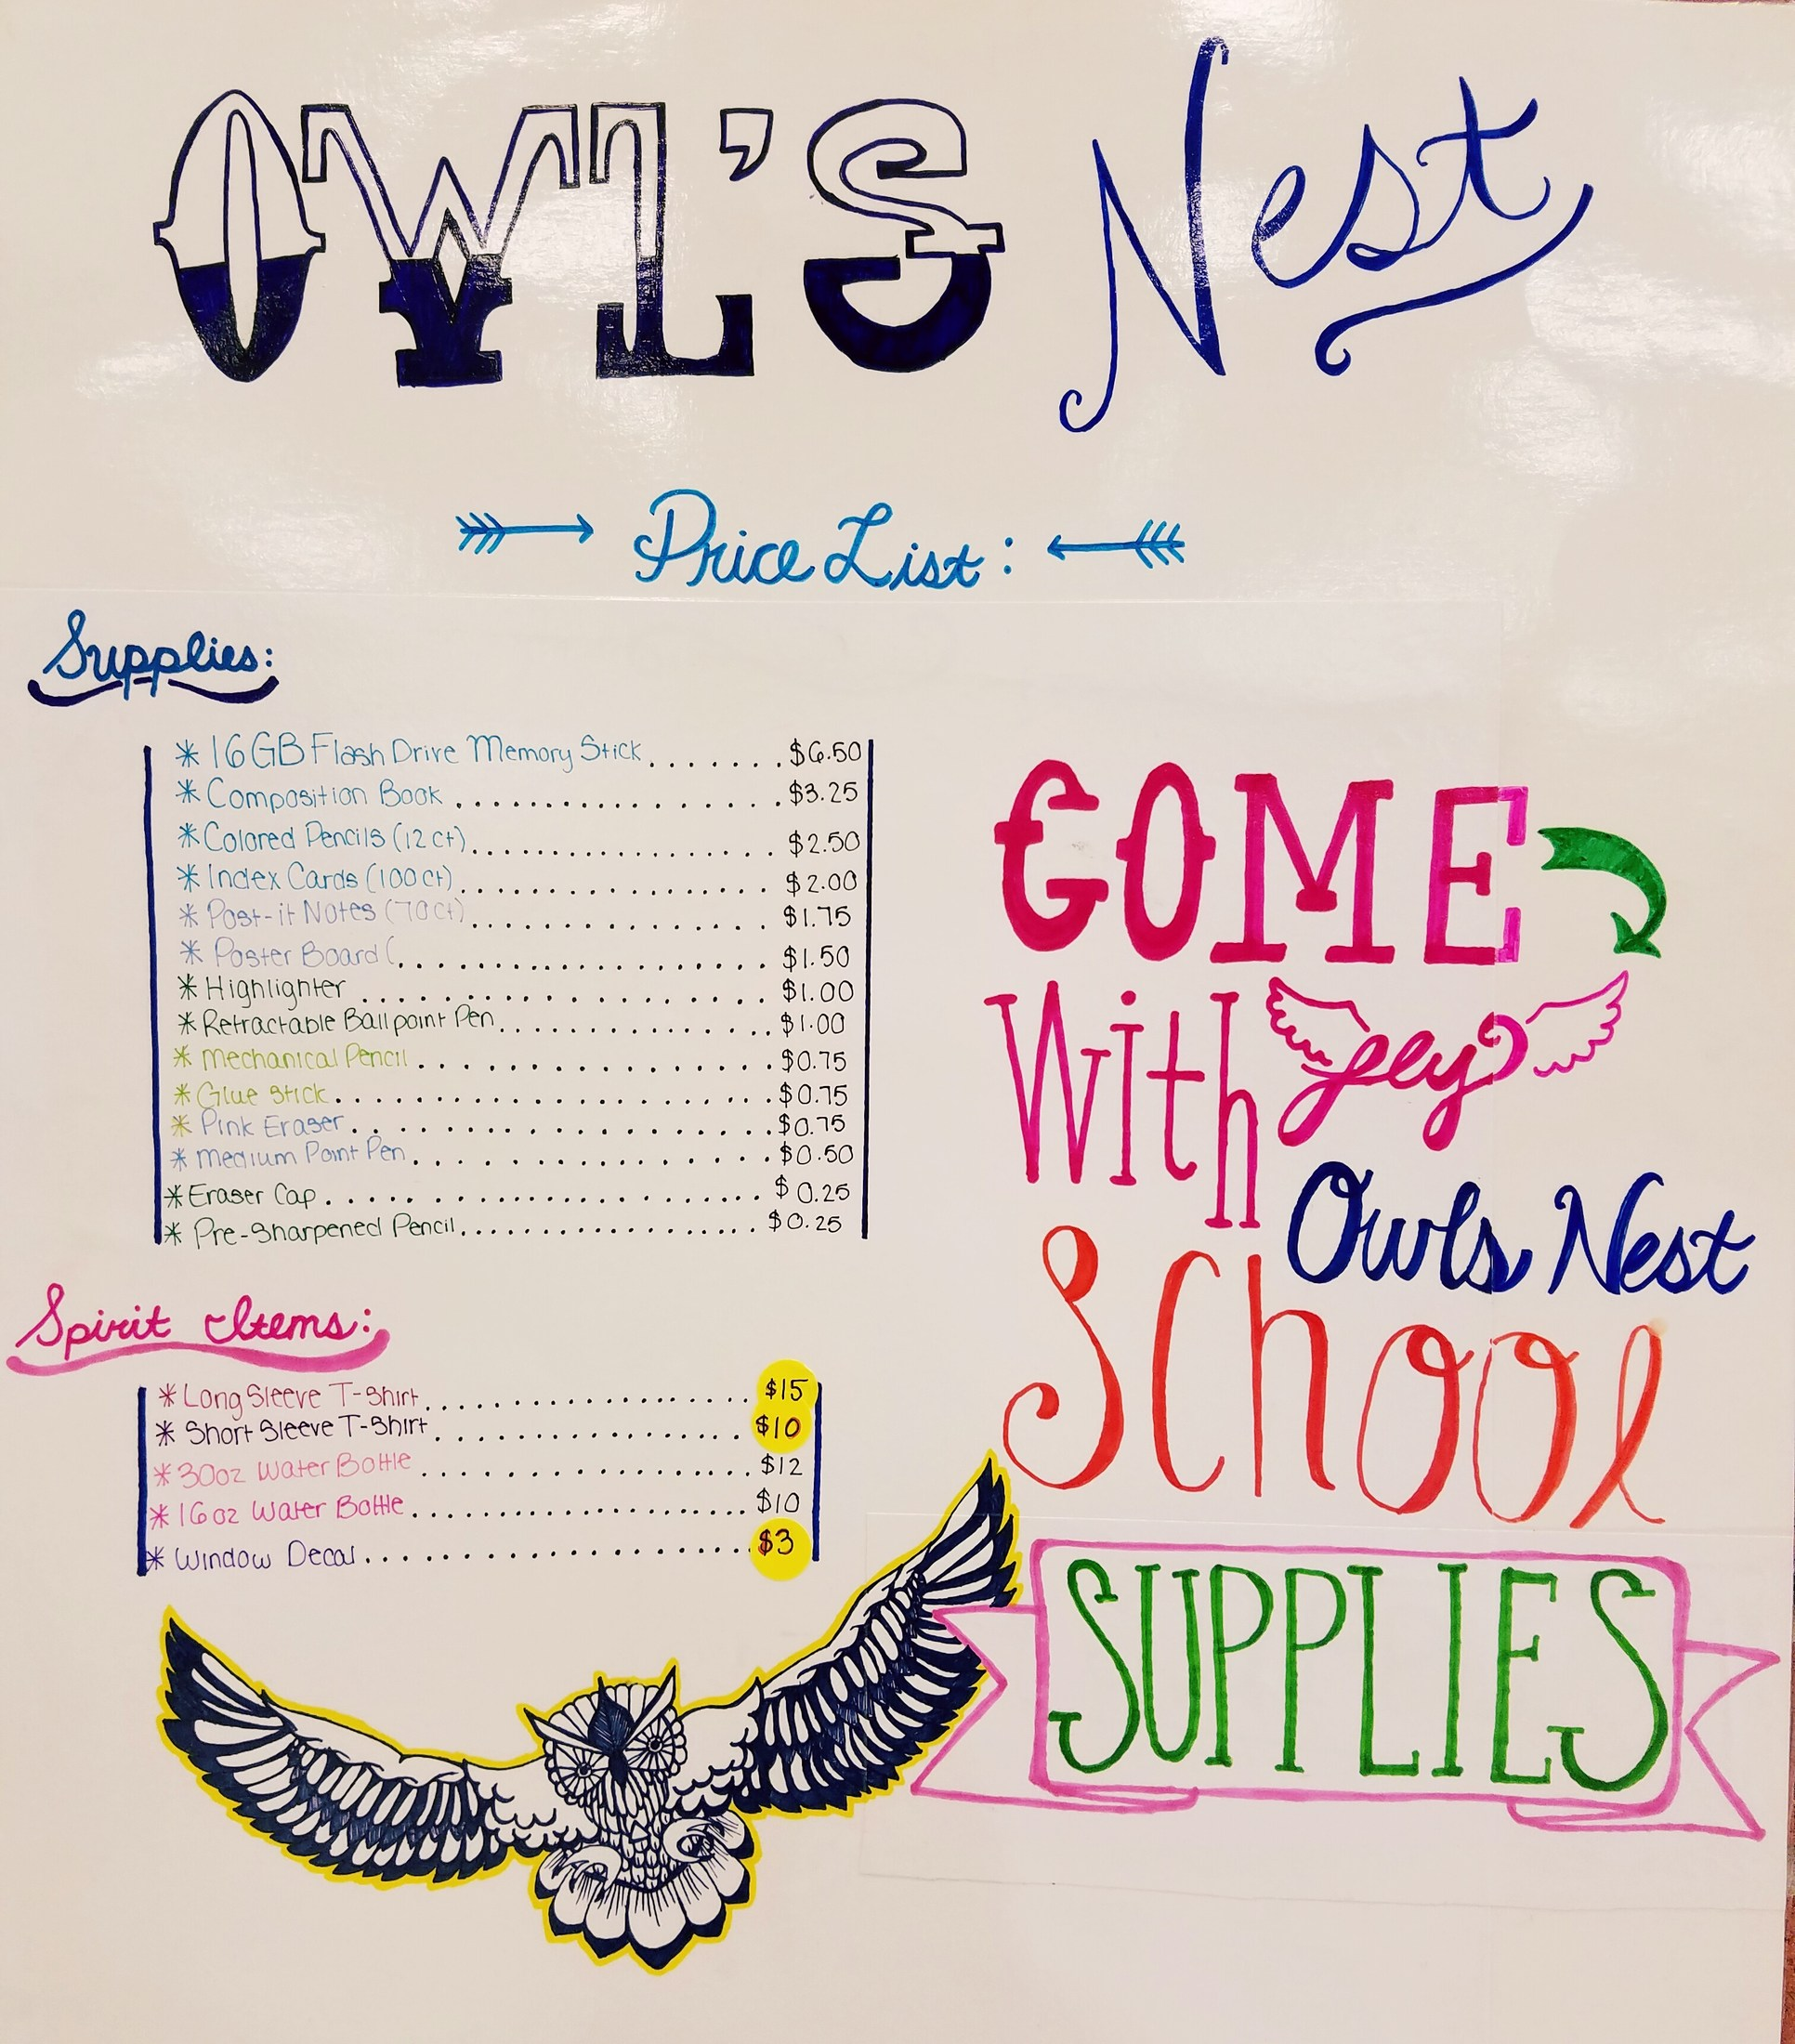 Owls' Nest Price List